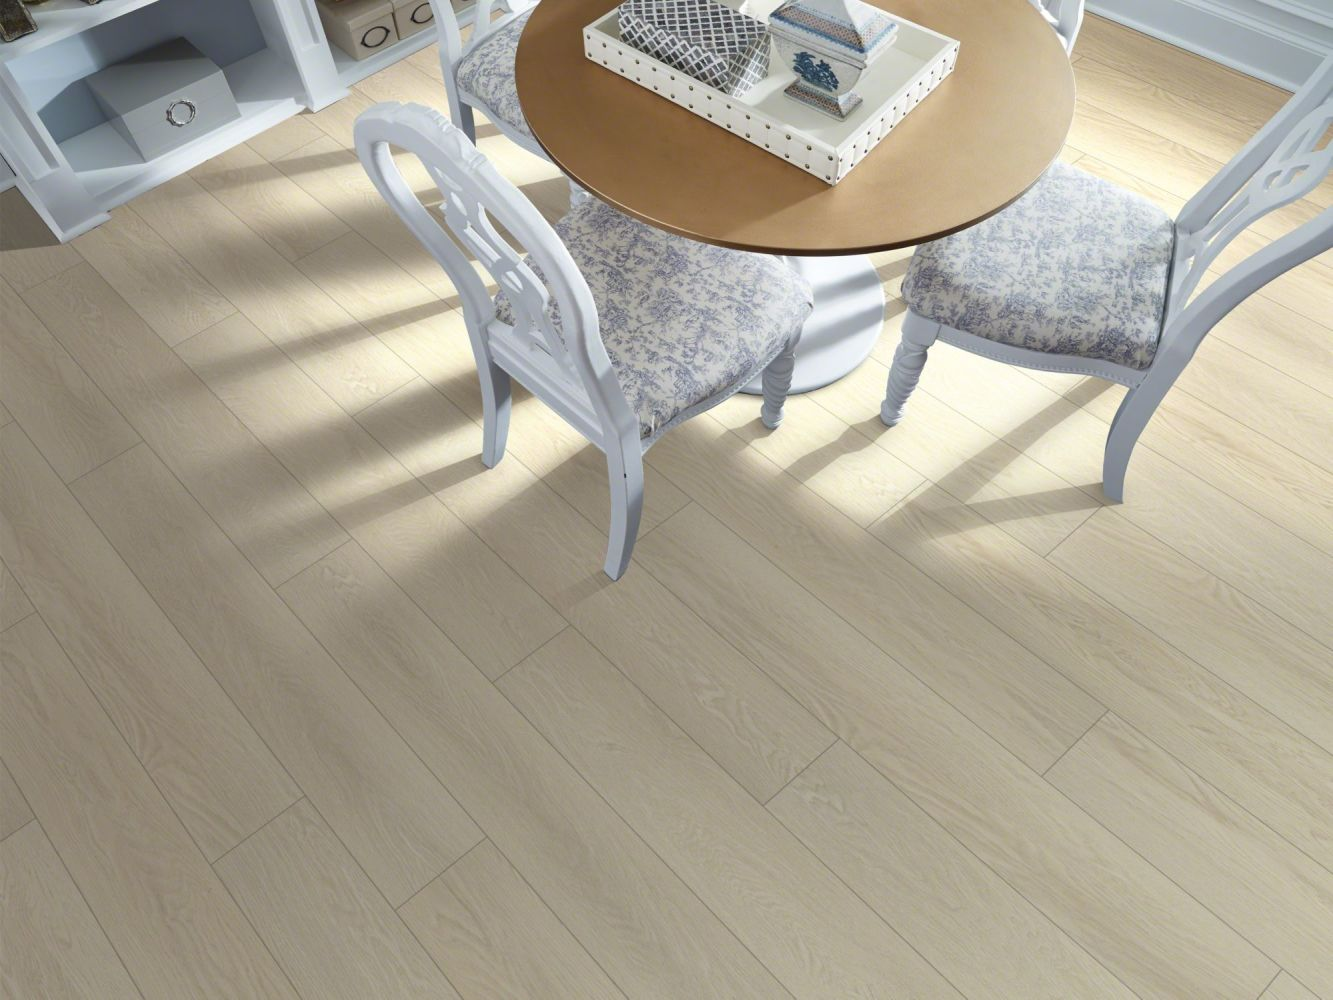 Shaw Floors Resilient Residential Distinction Plus Wheat Oak 01025_2045V